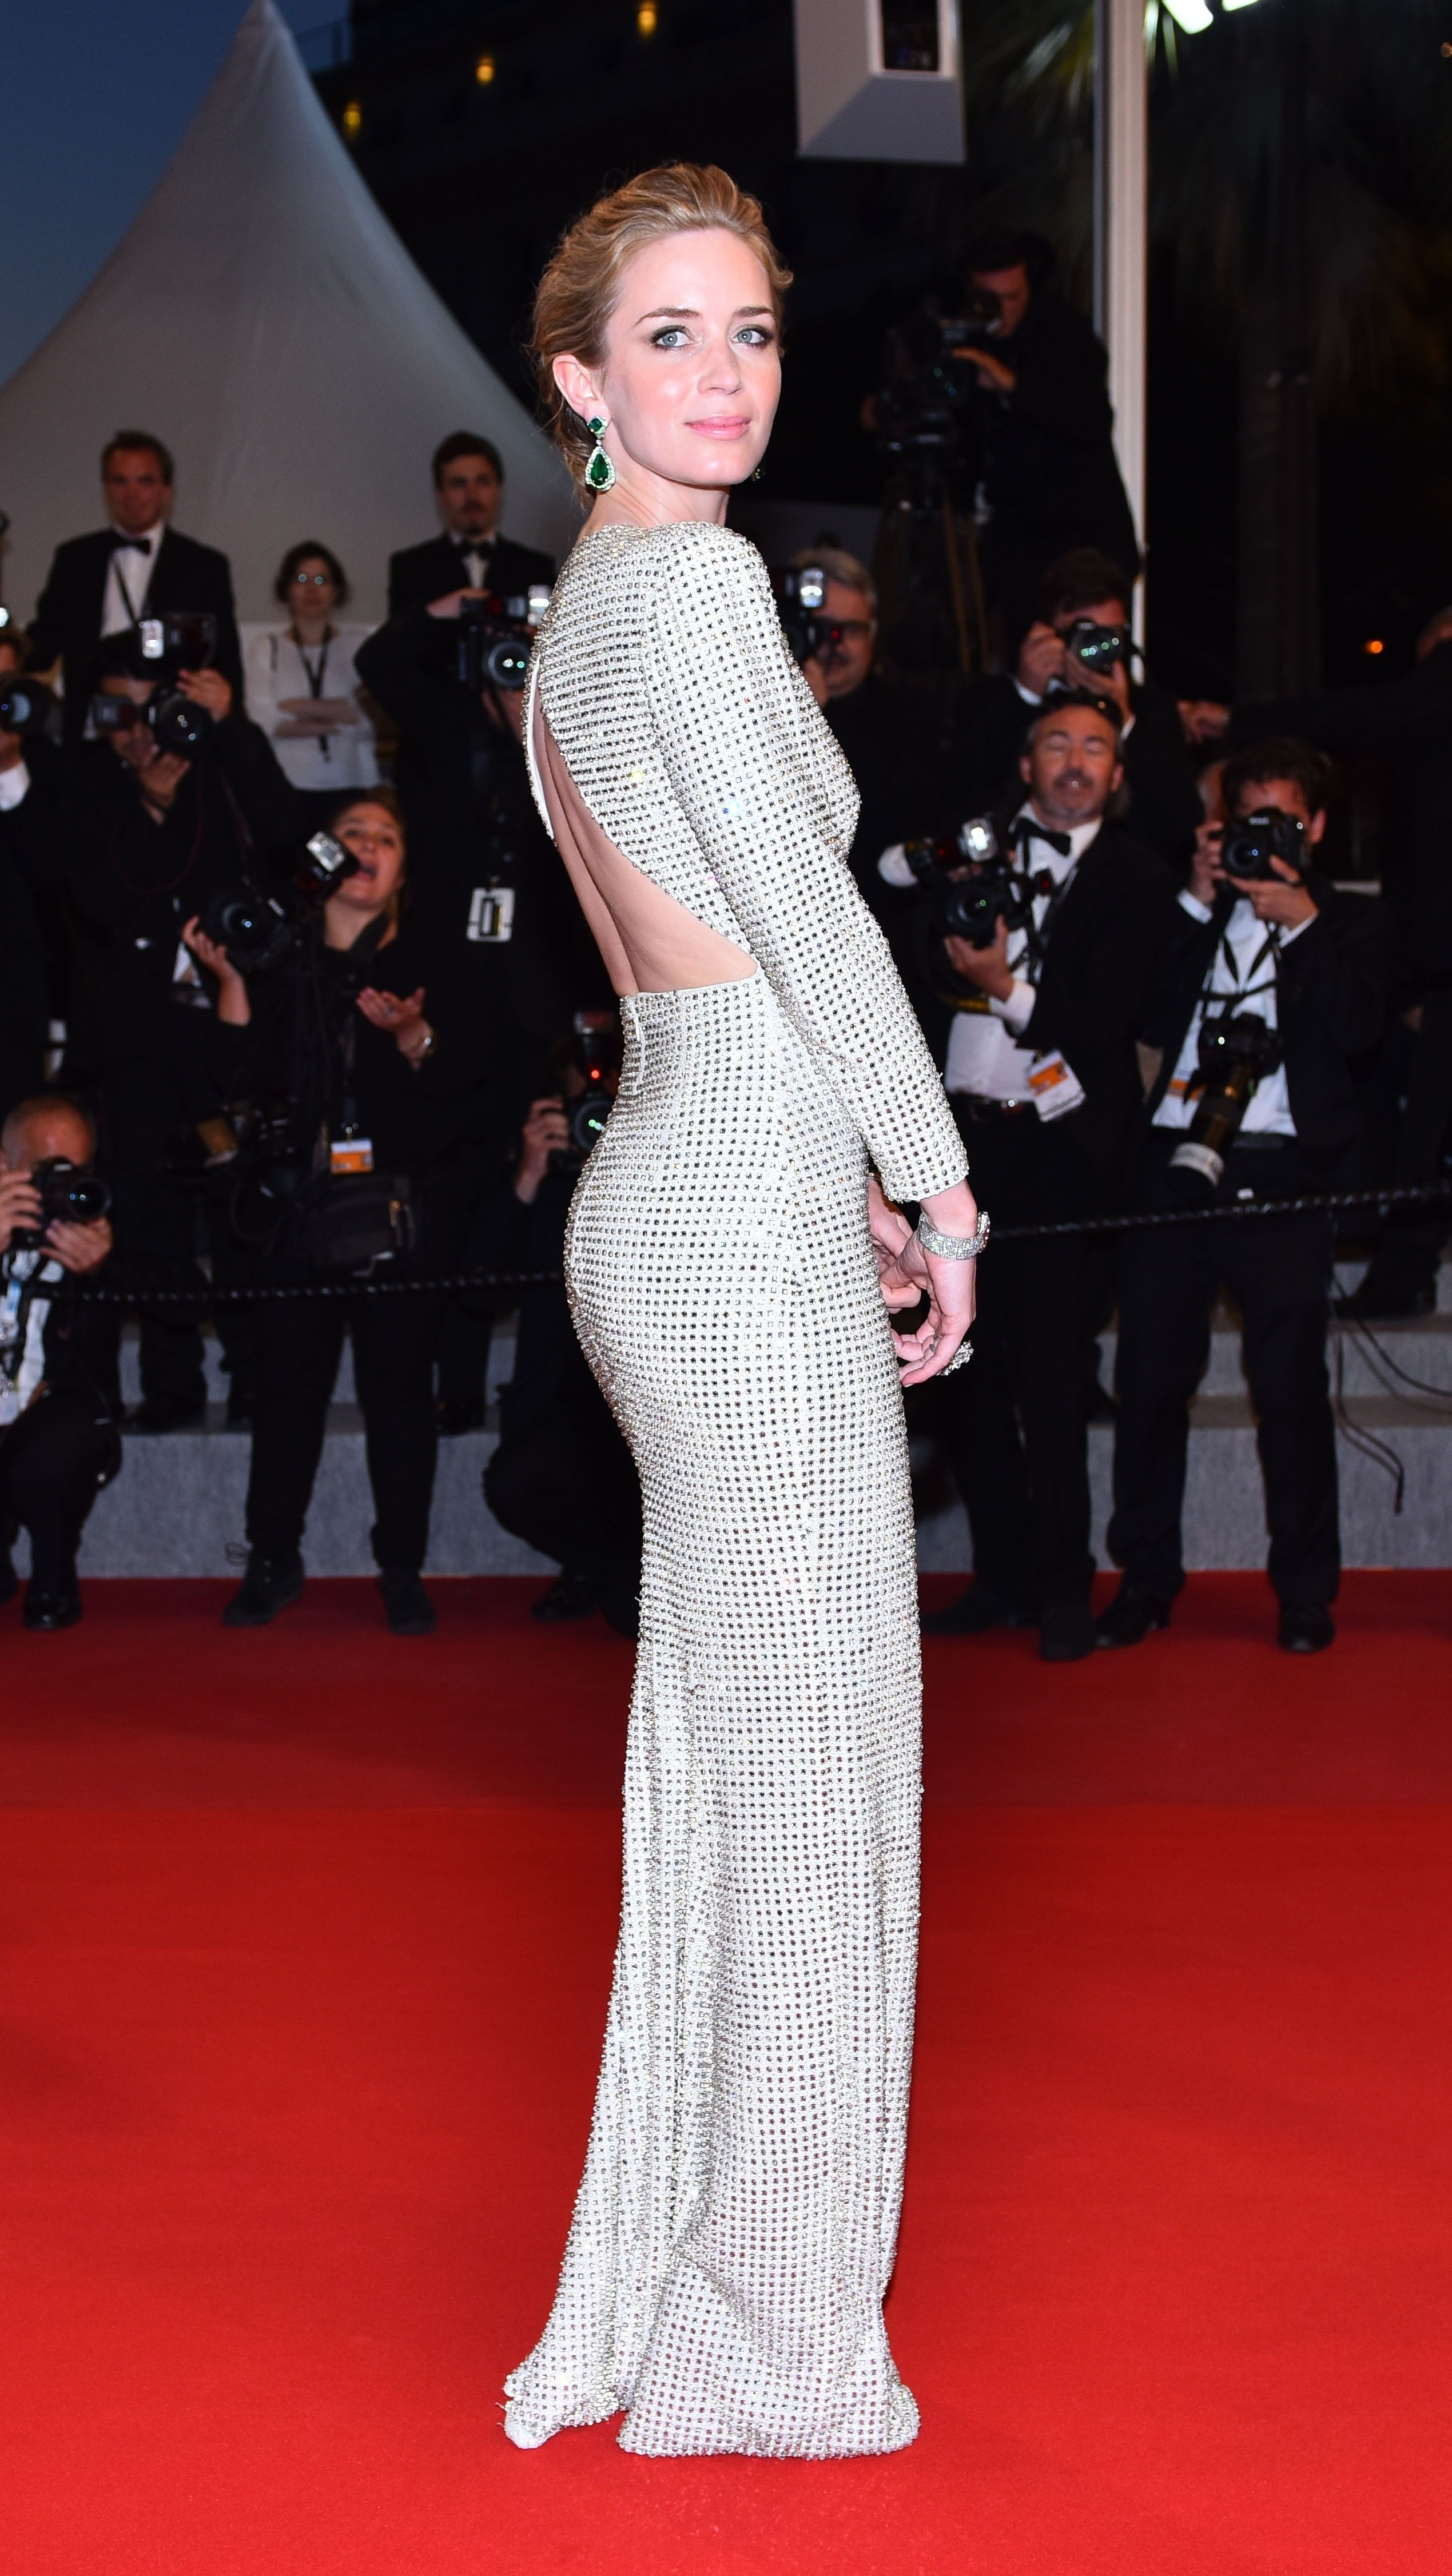 The cannes celebrity style everybodyus talking about suprb carpet